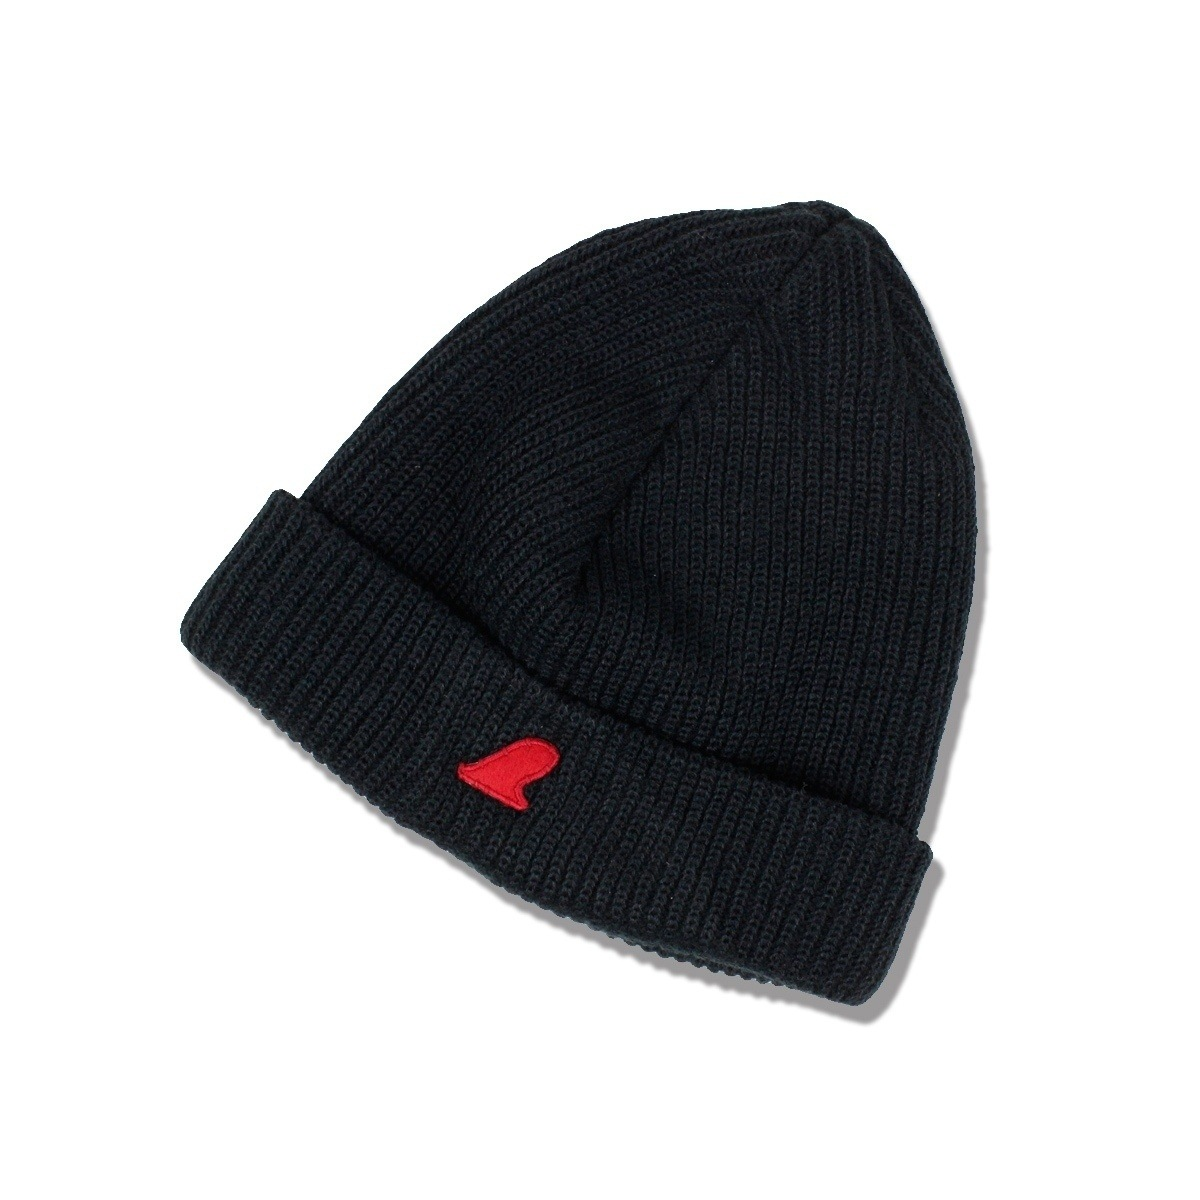 VOLN ヴォルン Redfin Kint Cap